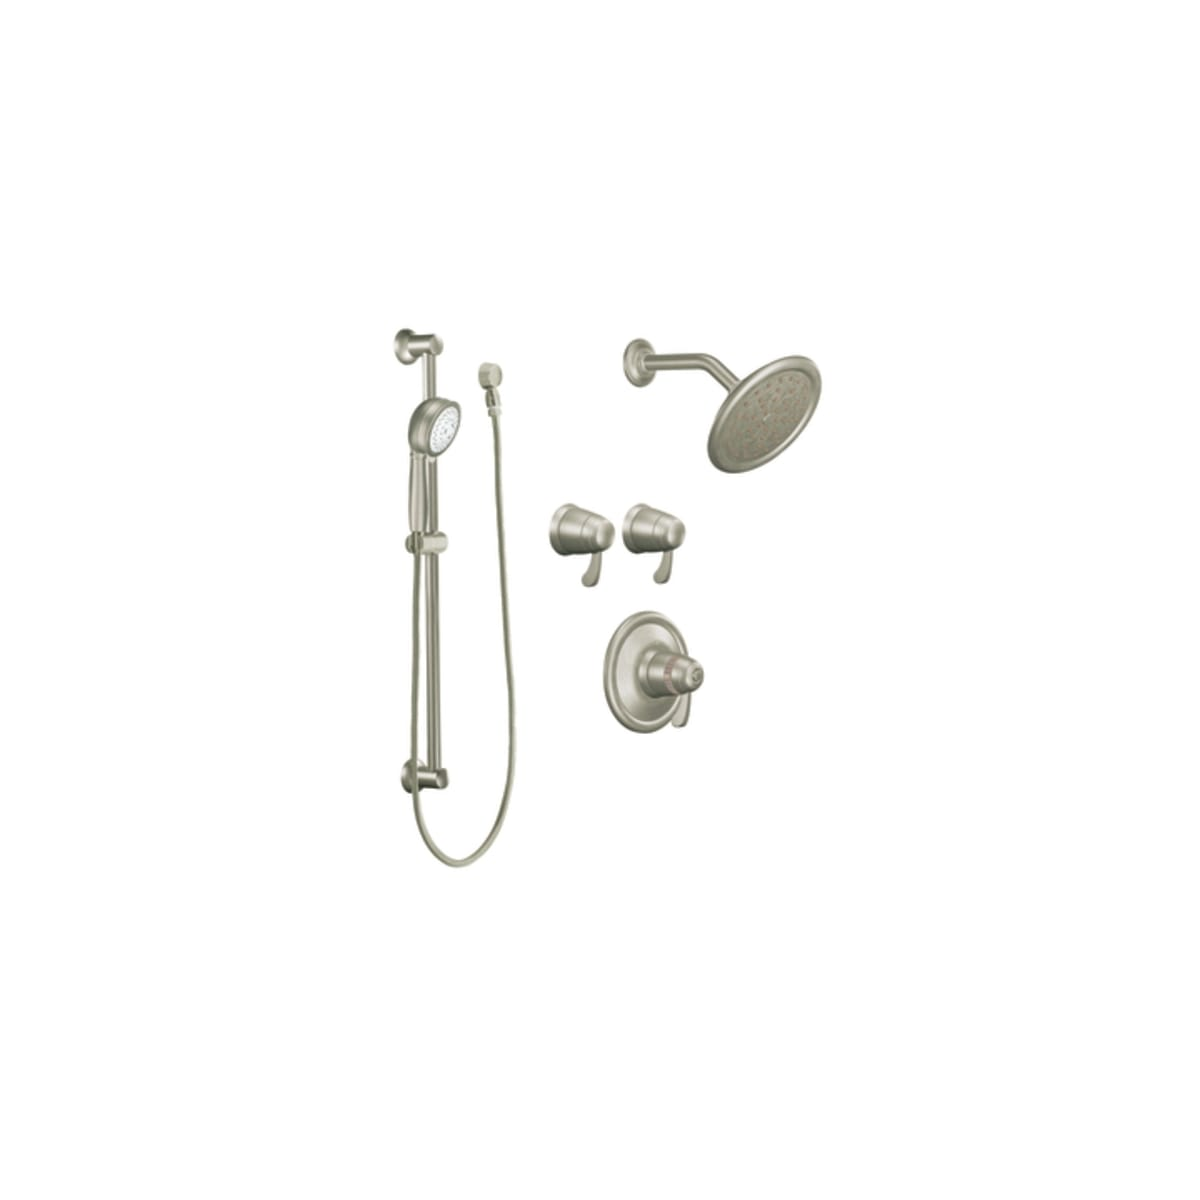 Moen Ts270orb Oil Rubbed Bronze Triple Handle Vertical Spa